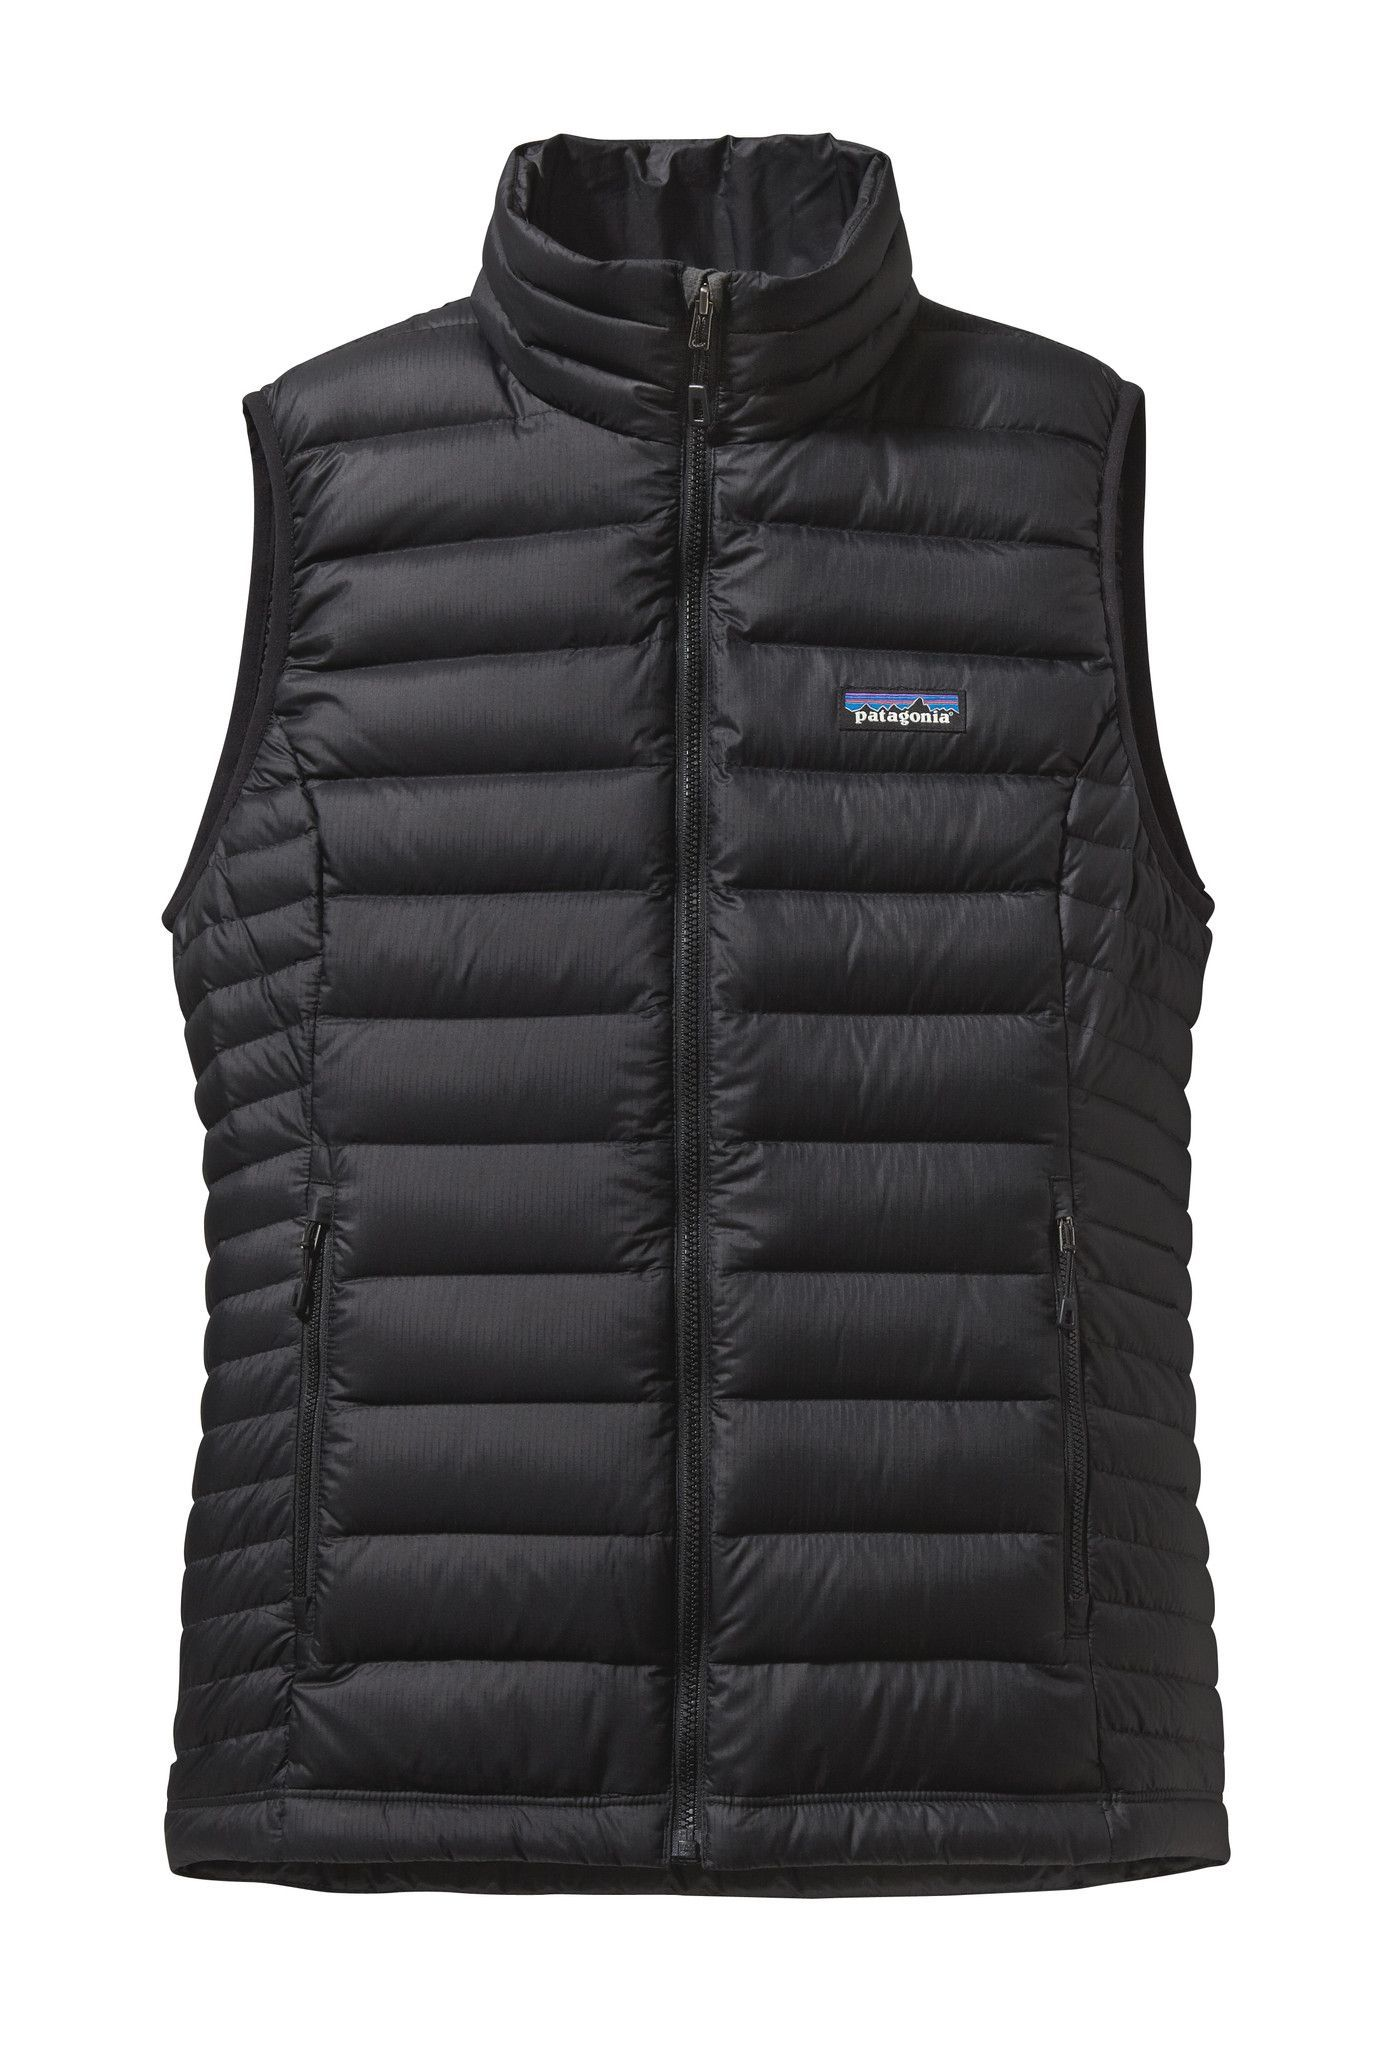 Patagonia women's down sweater vest | Patagonia, Clothes and Gold